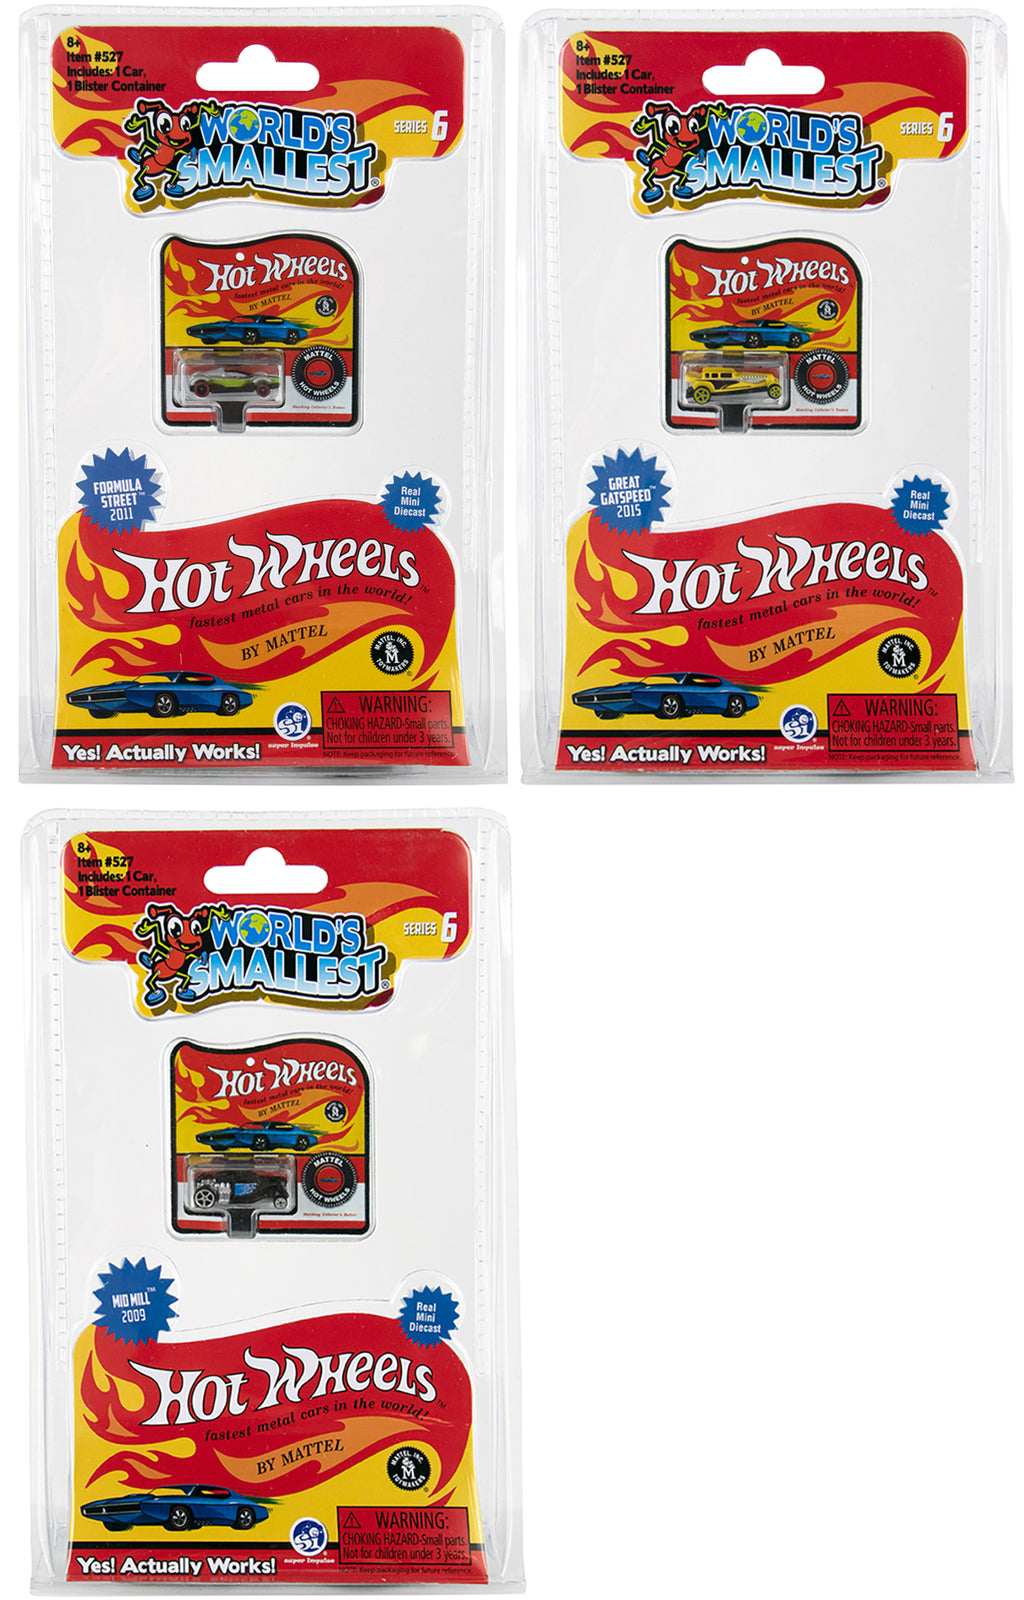 World's Smallest Hot Wheels - Series 6 - (Bundle of 3)